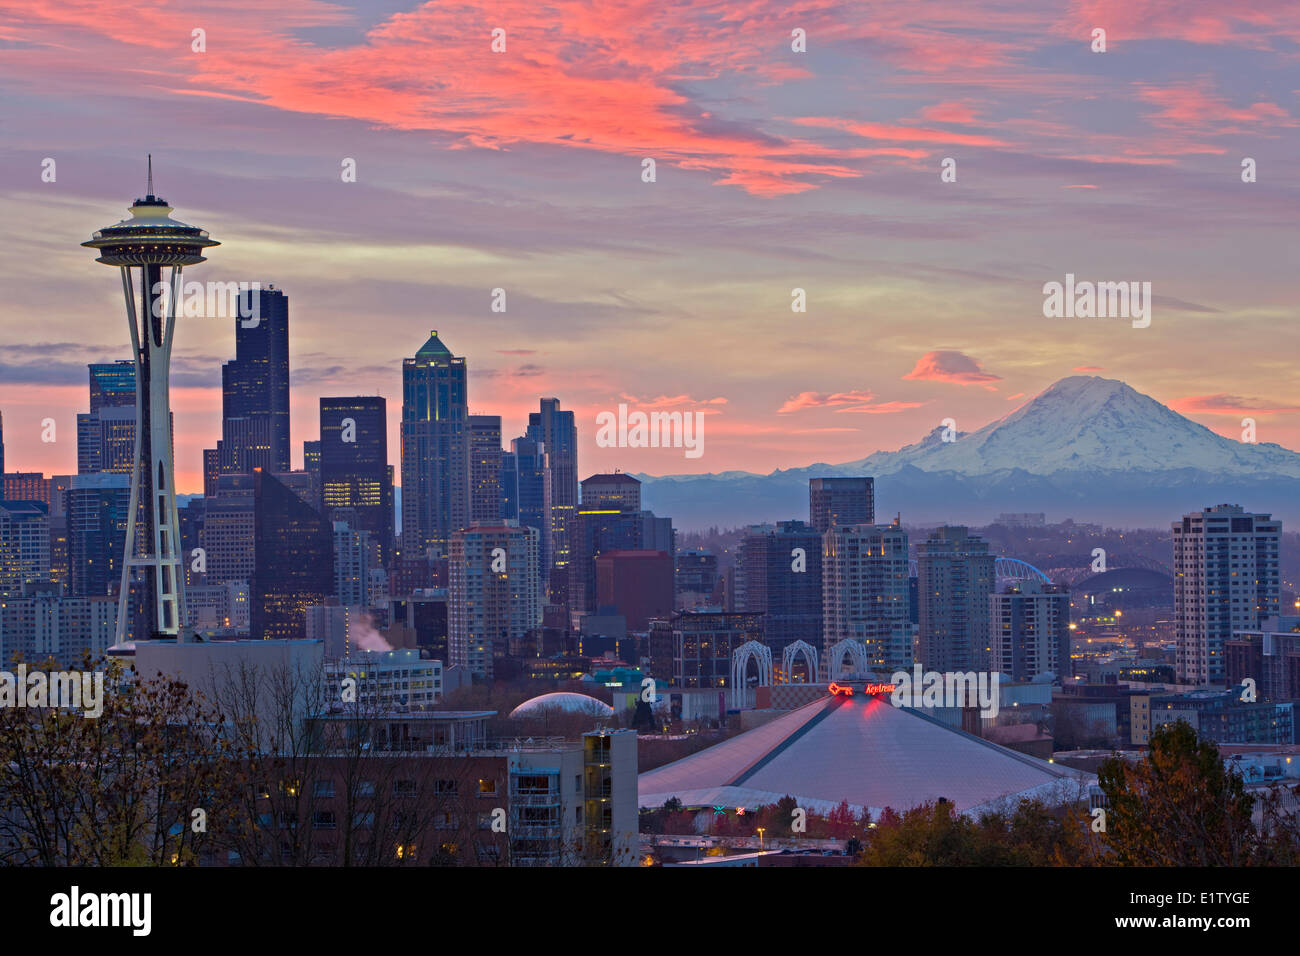 Colorful clouds during sunrise above the city of Seattle and the famous Space Needle landmark, Washington State, Stock Photo